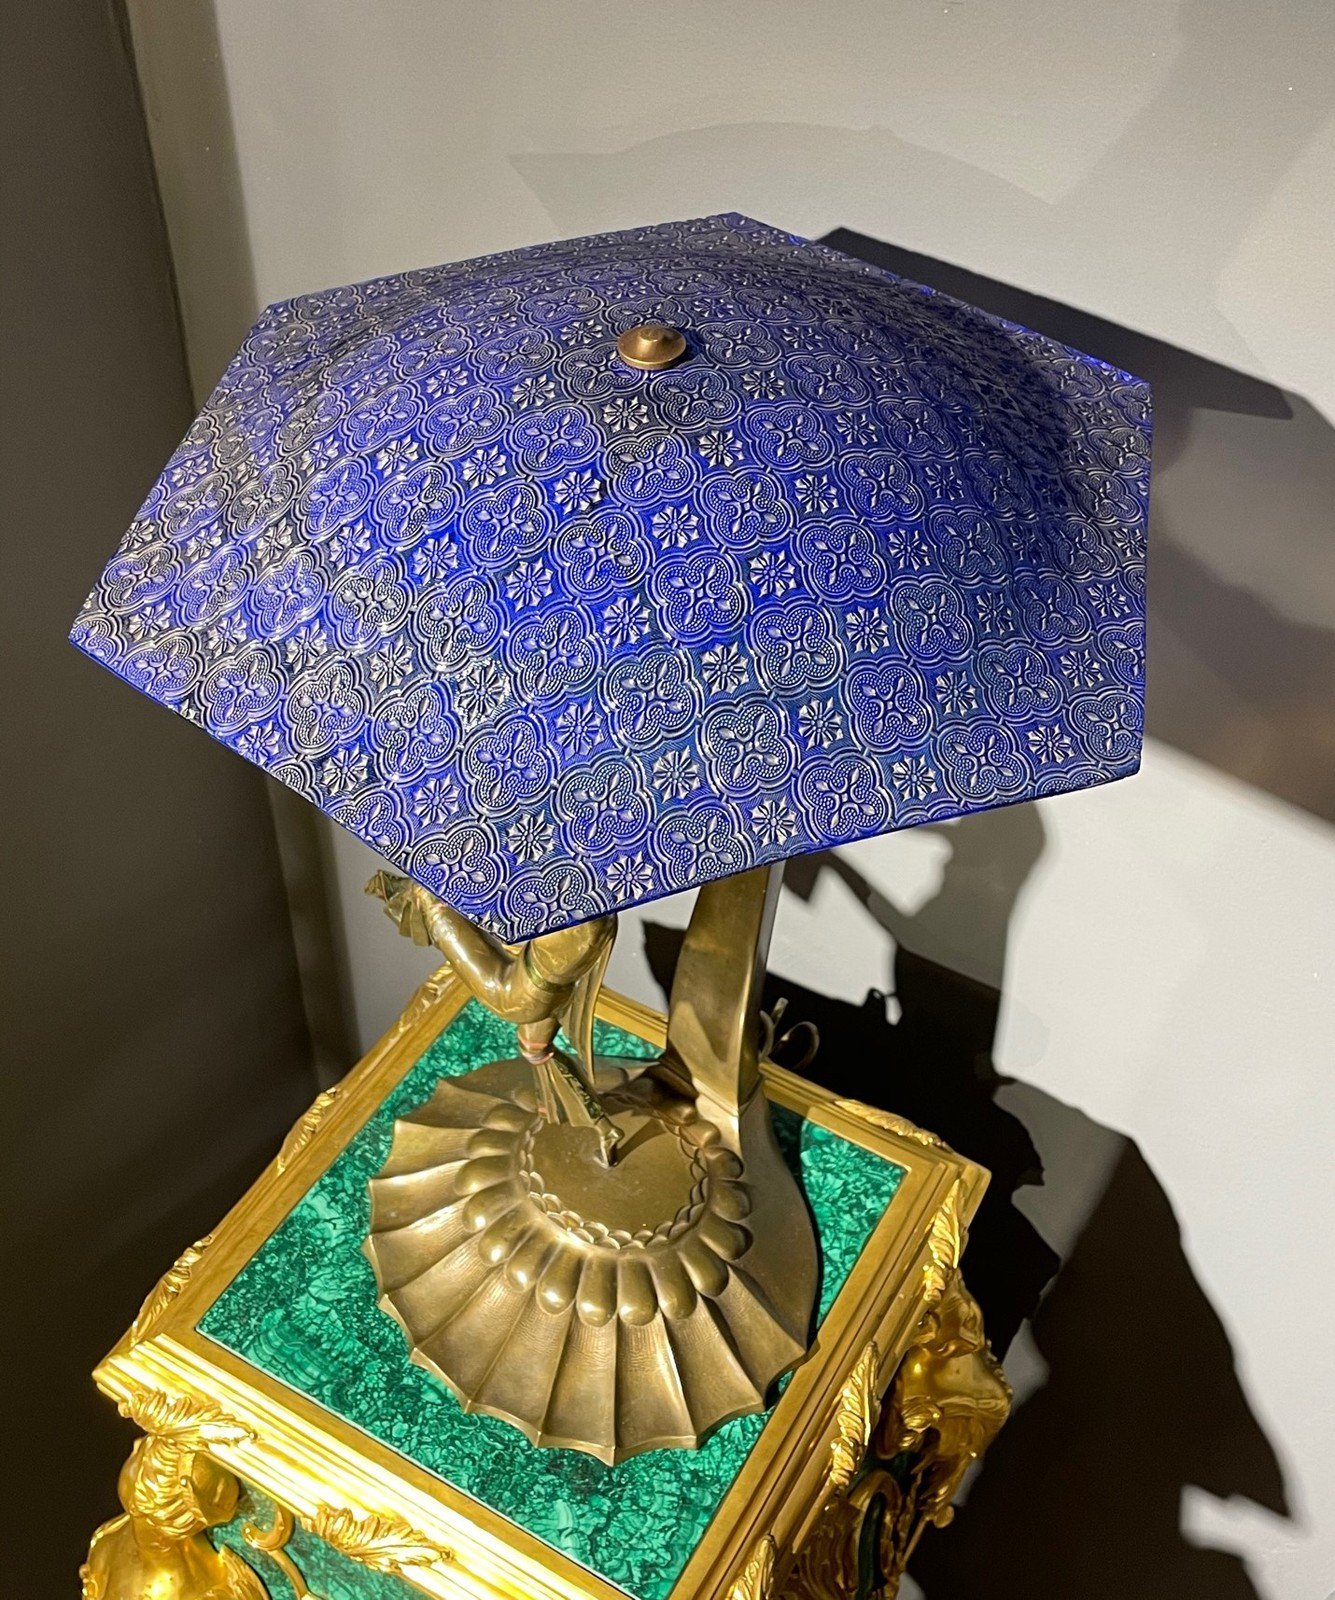 Antique table lamp